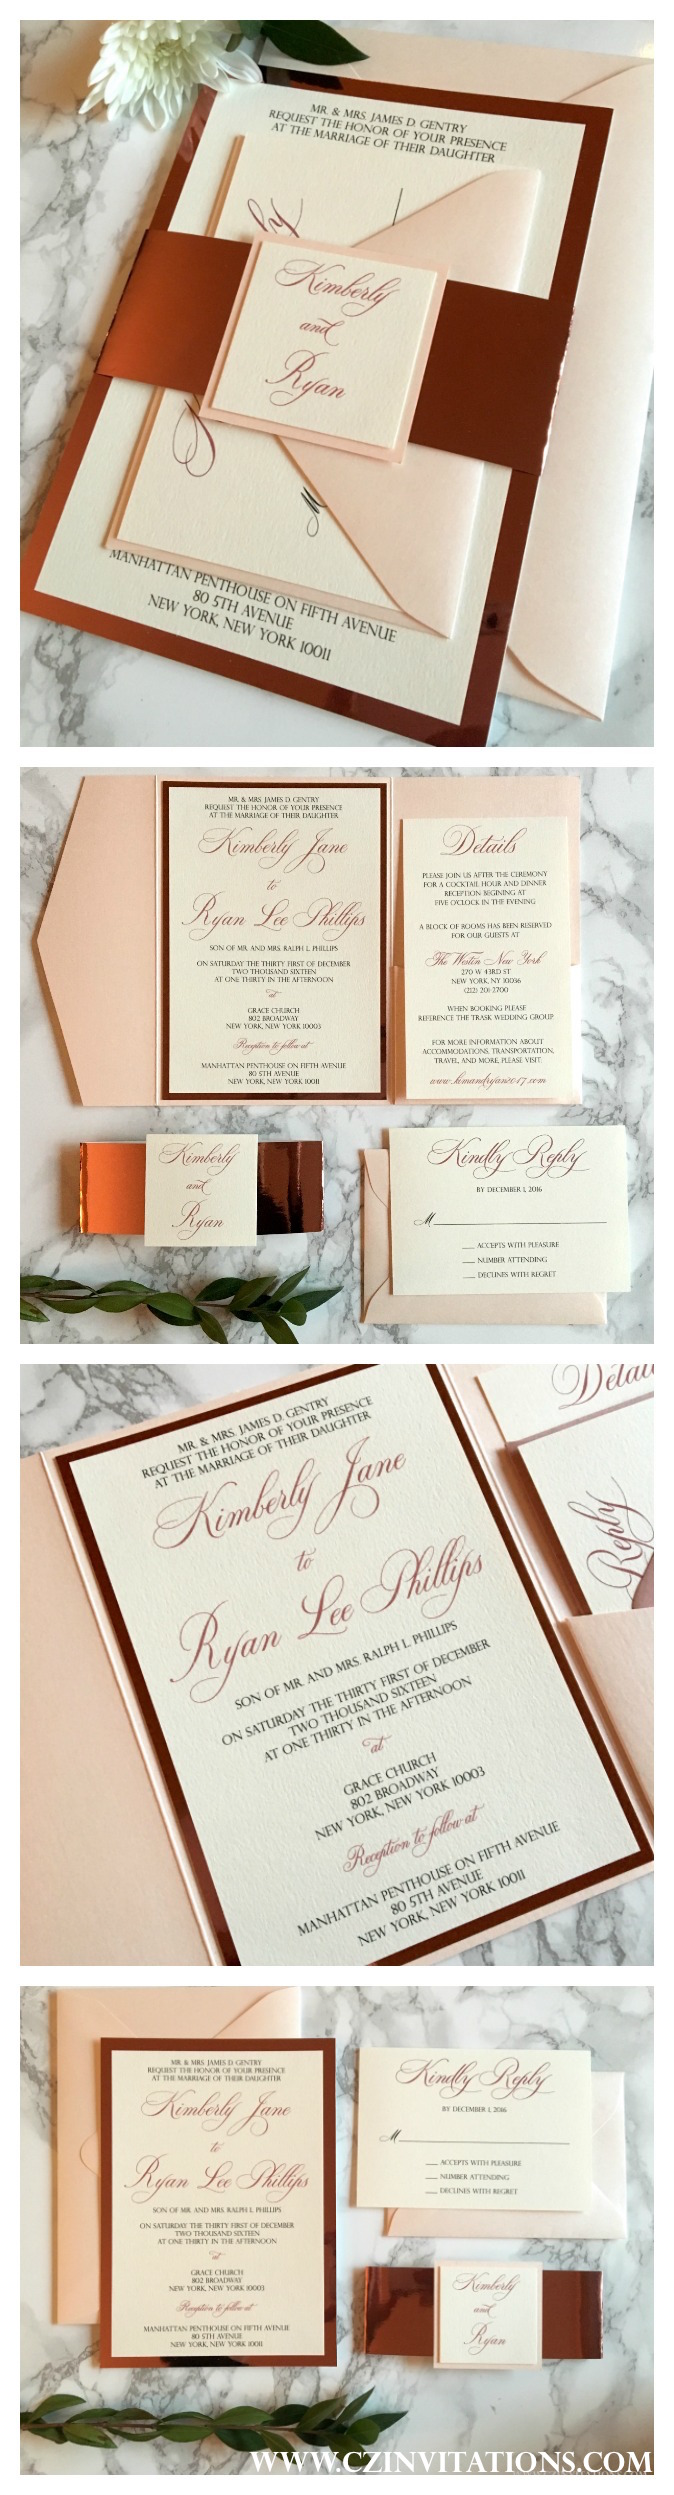 Blush and Rose Gold Mirror Wedding invitation. Comes in both Pocket ...